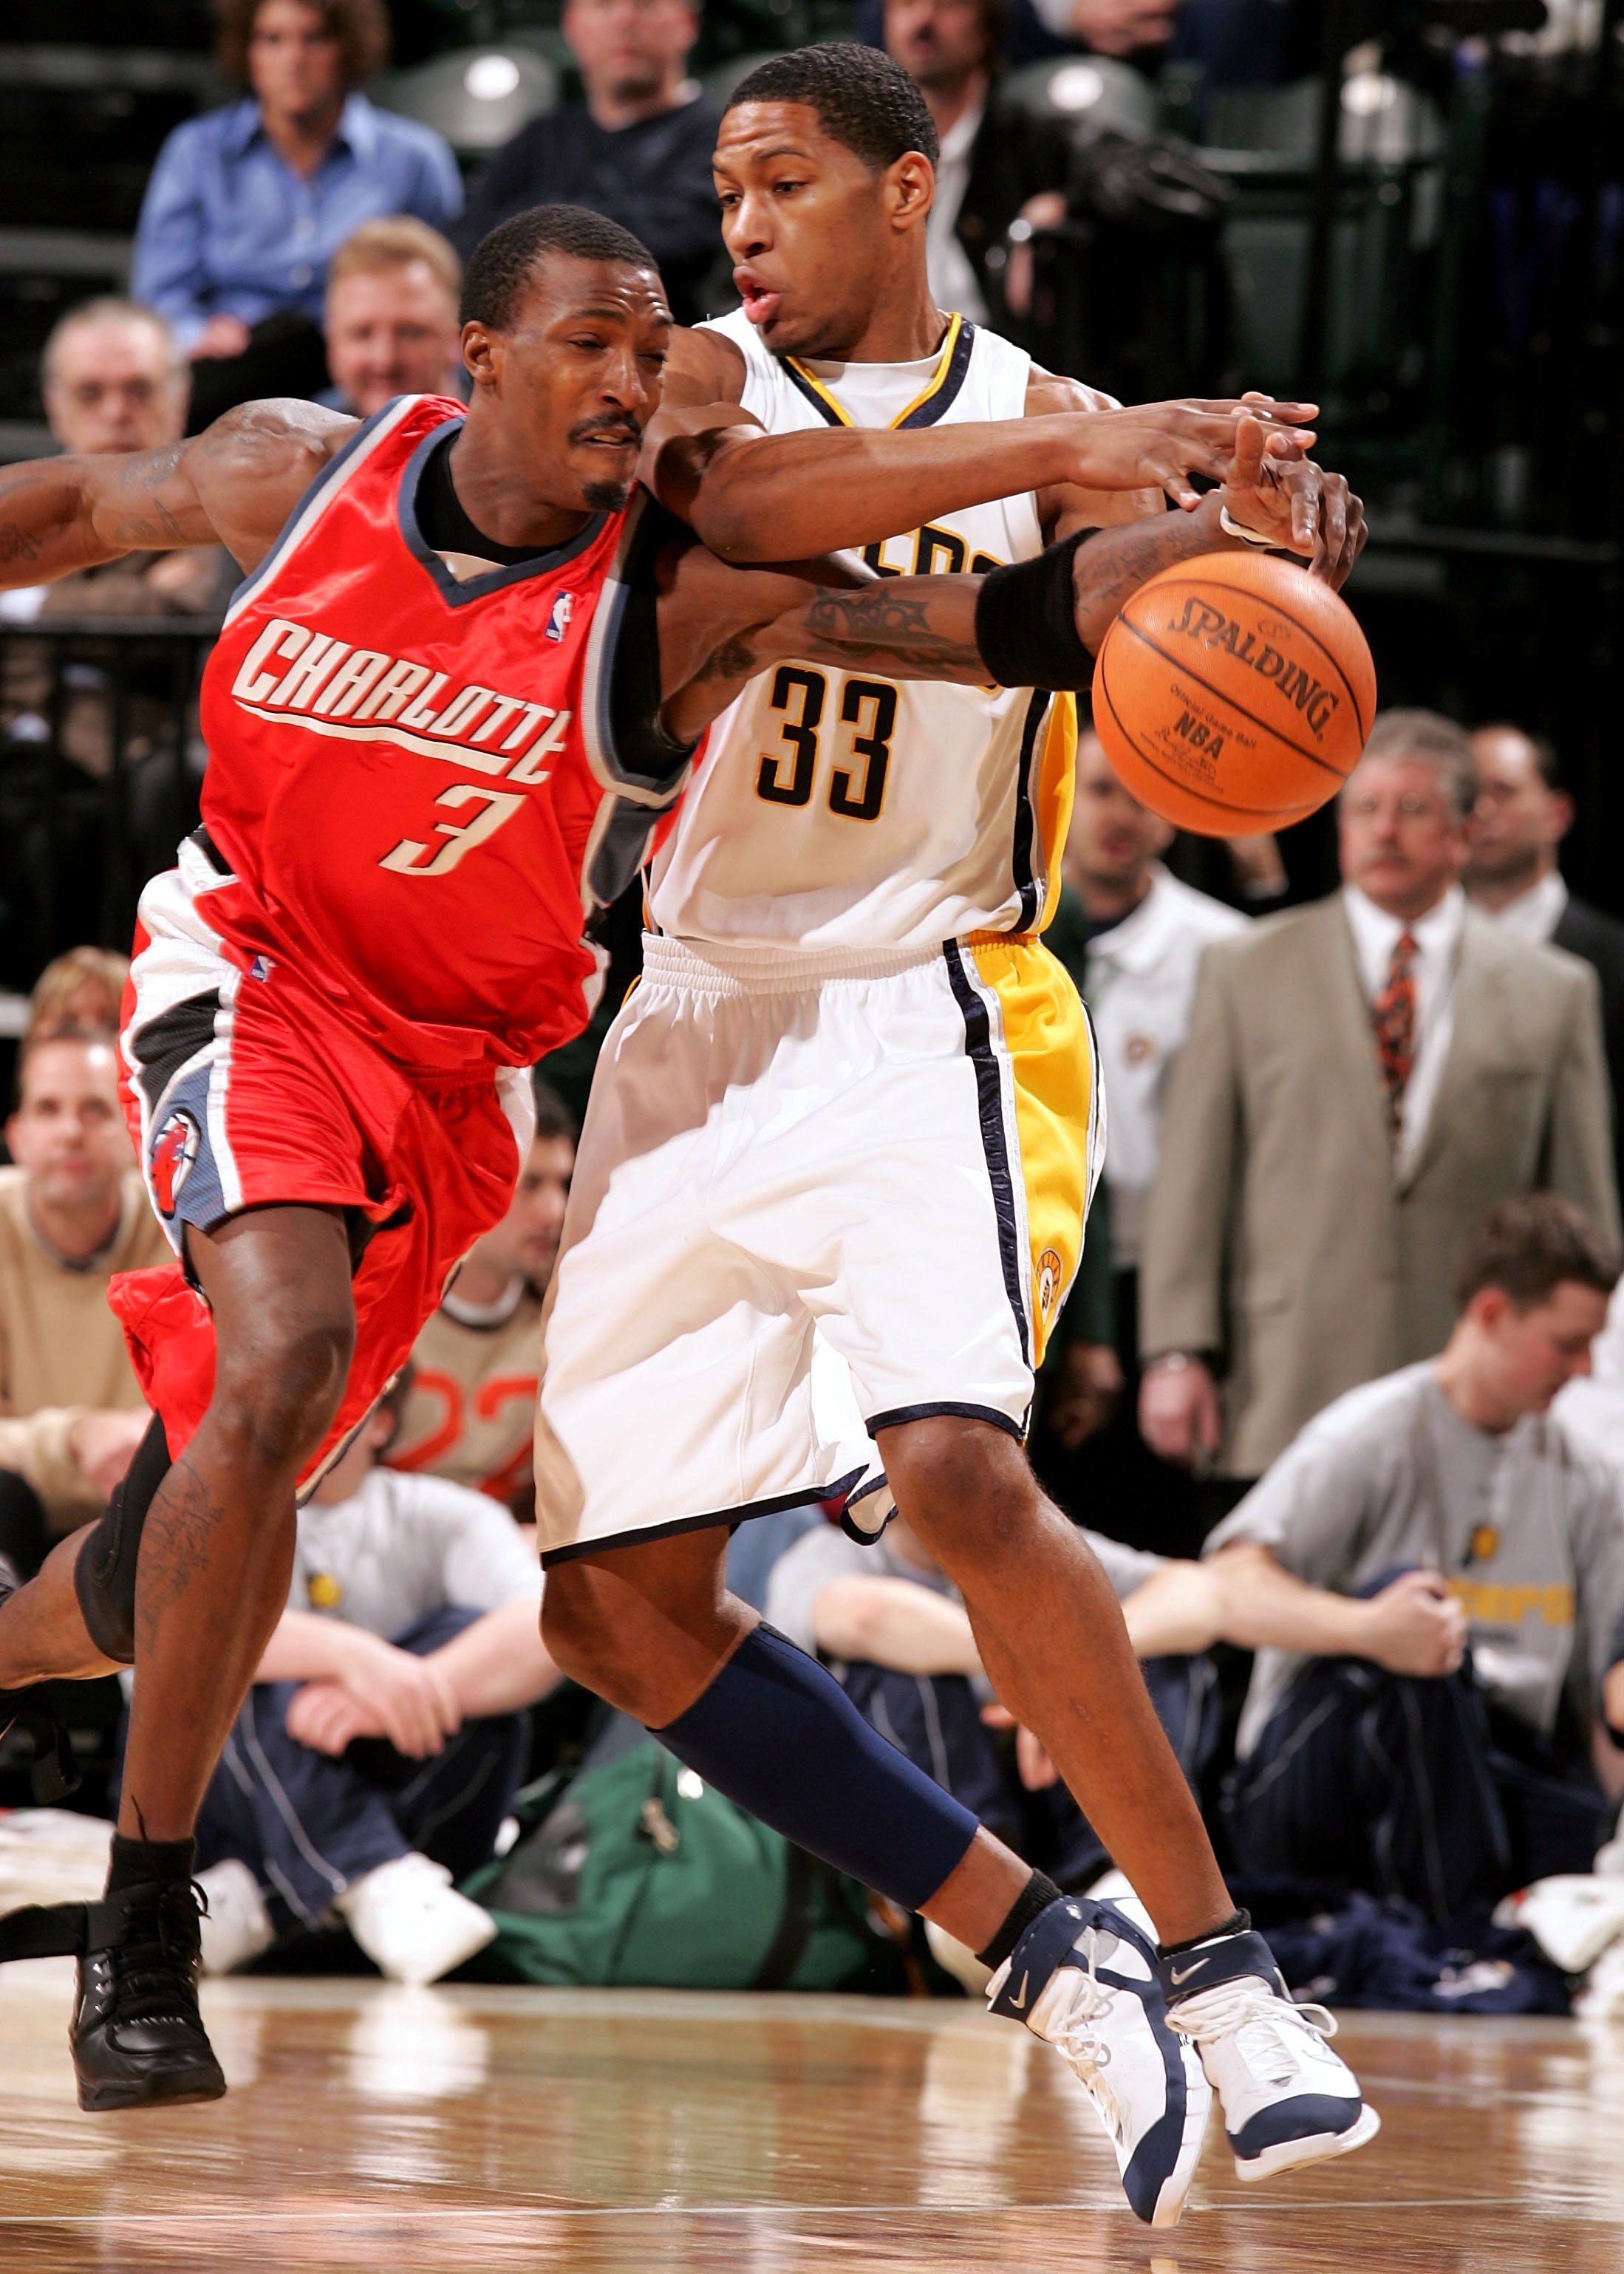 INDIANAPOLIS - JANUARY 18:  Gerald Wallace #3 of the Charlotte Bobcats steals the ball away from Danny Granger #33 of the Indiana Pacers on January 18, 2006 at Conseco Fieldhouse in Indianapolis, Indiana. The Pacers defeated the Bobcats 98-92.  NOTE TO US